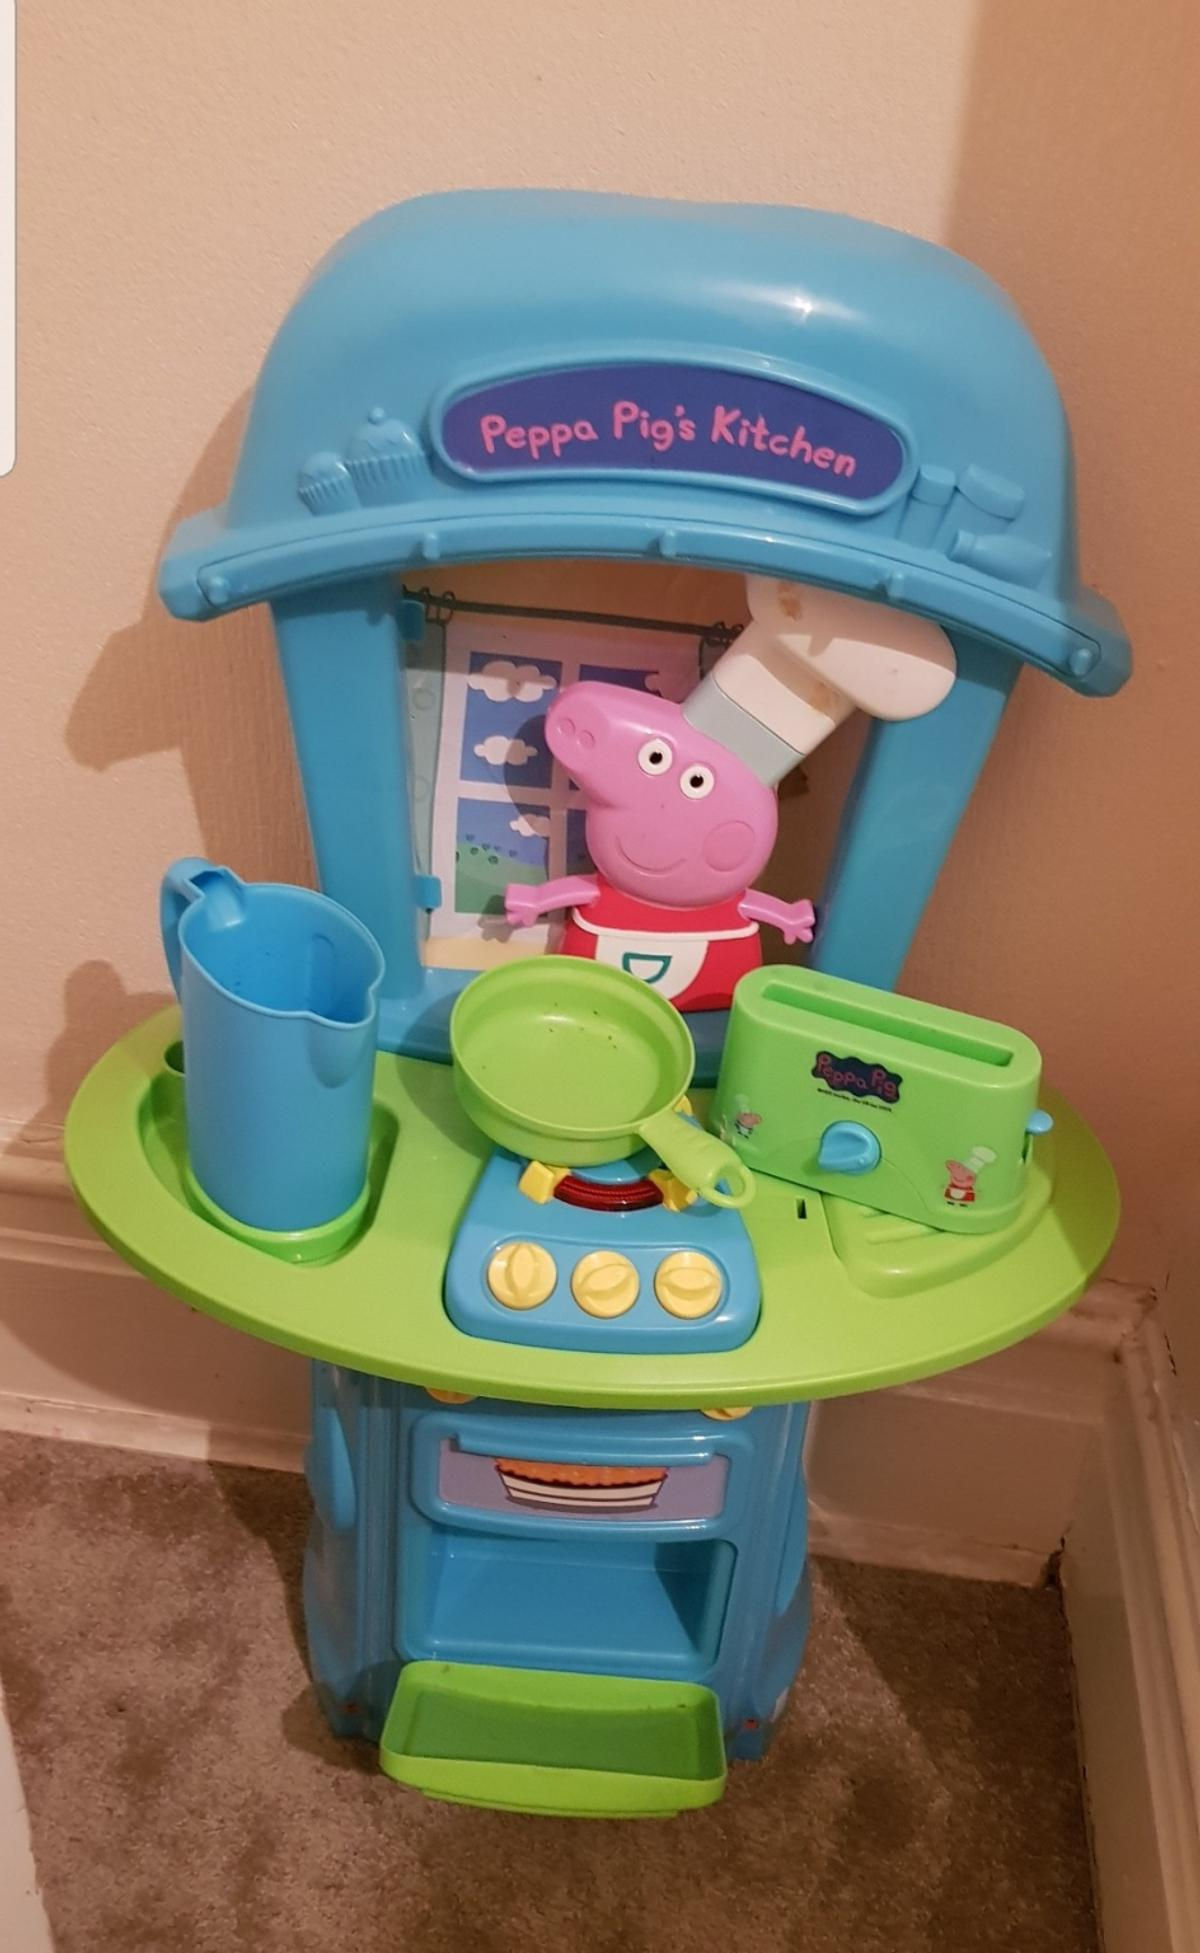 Peppa Pig S Kitchen Play Set In Limefield For 10 00 For Sale Shpock